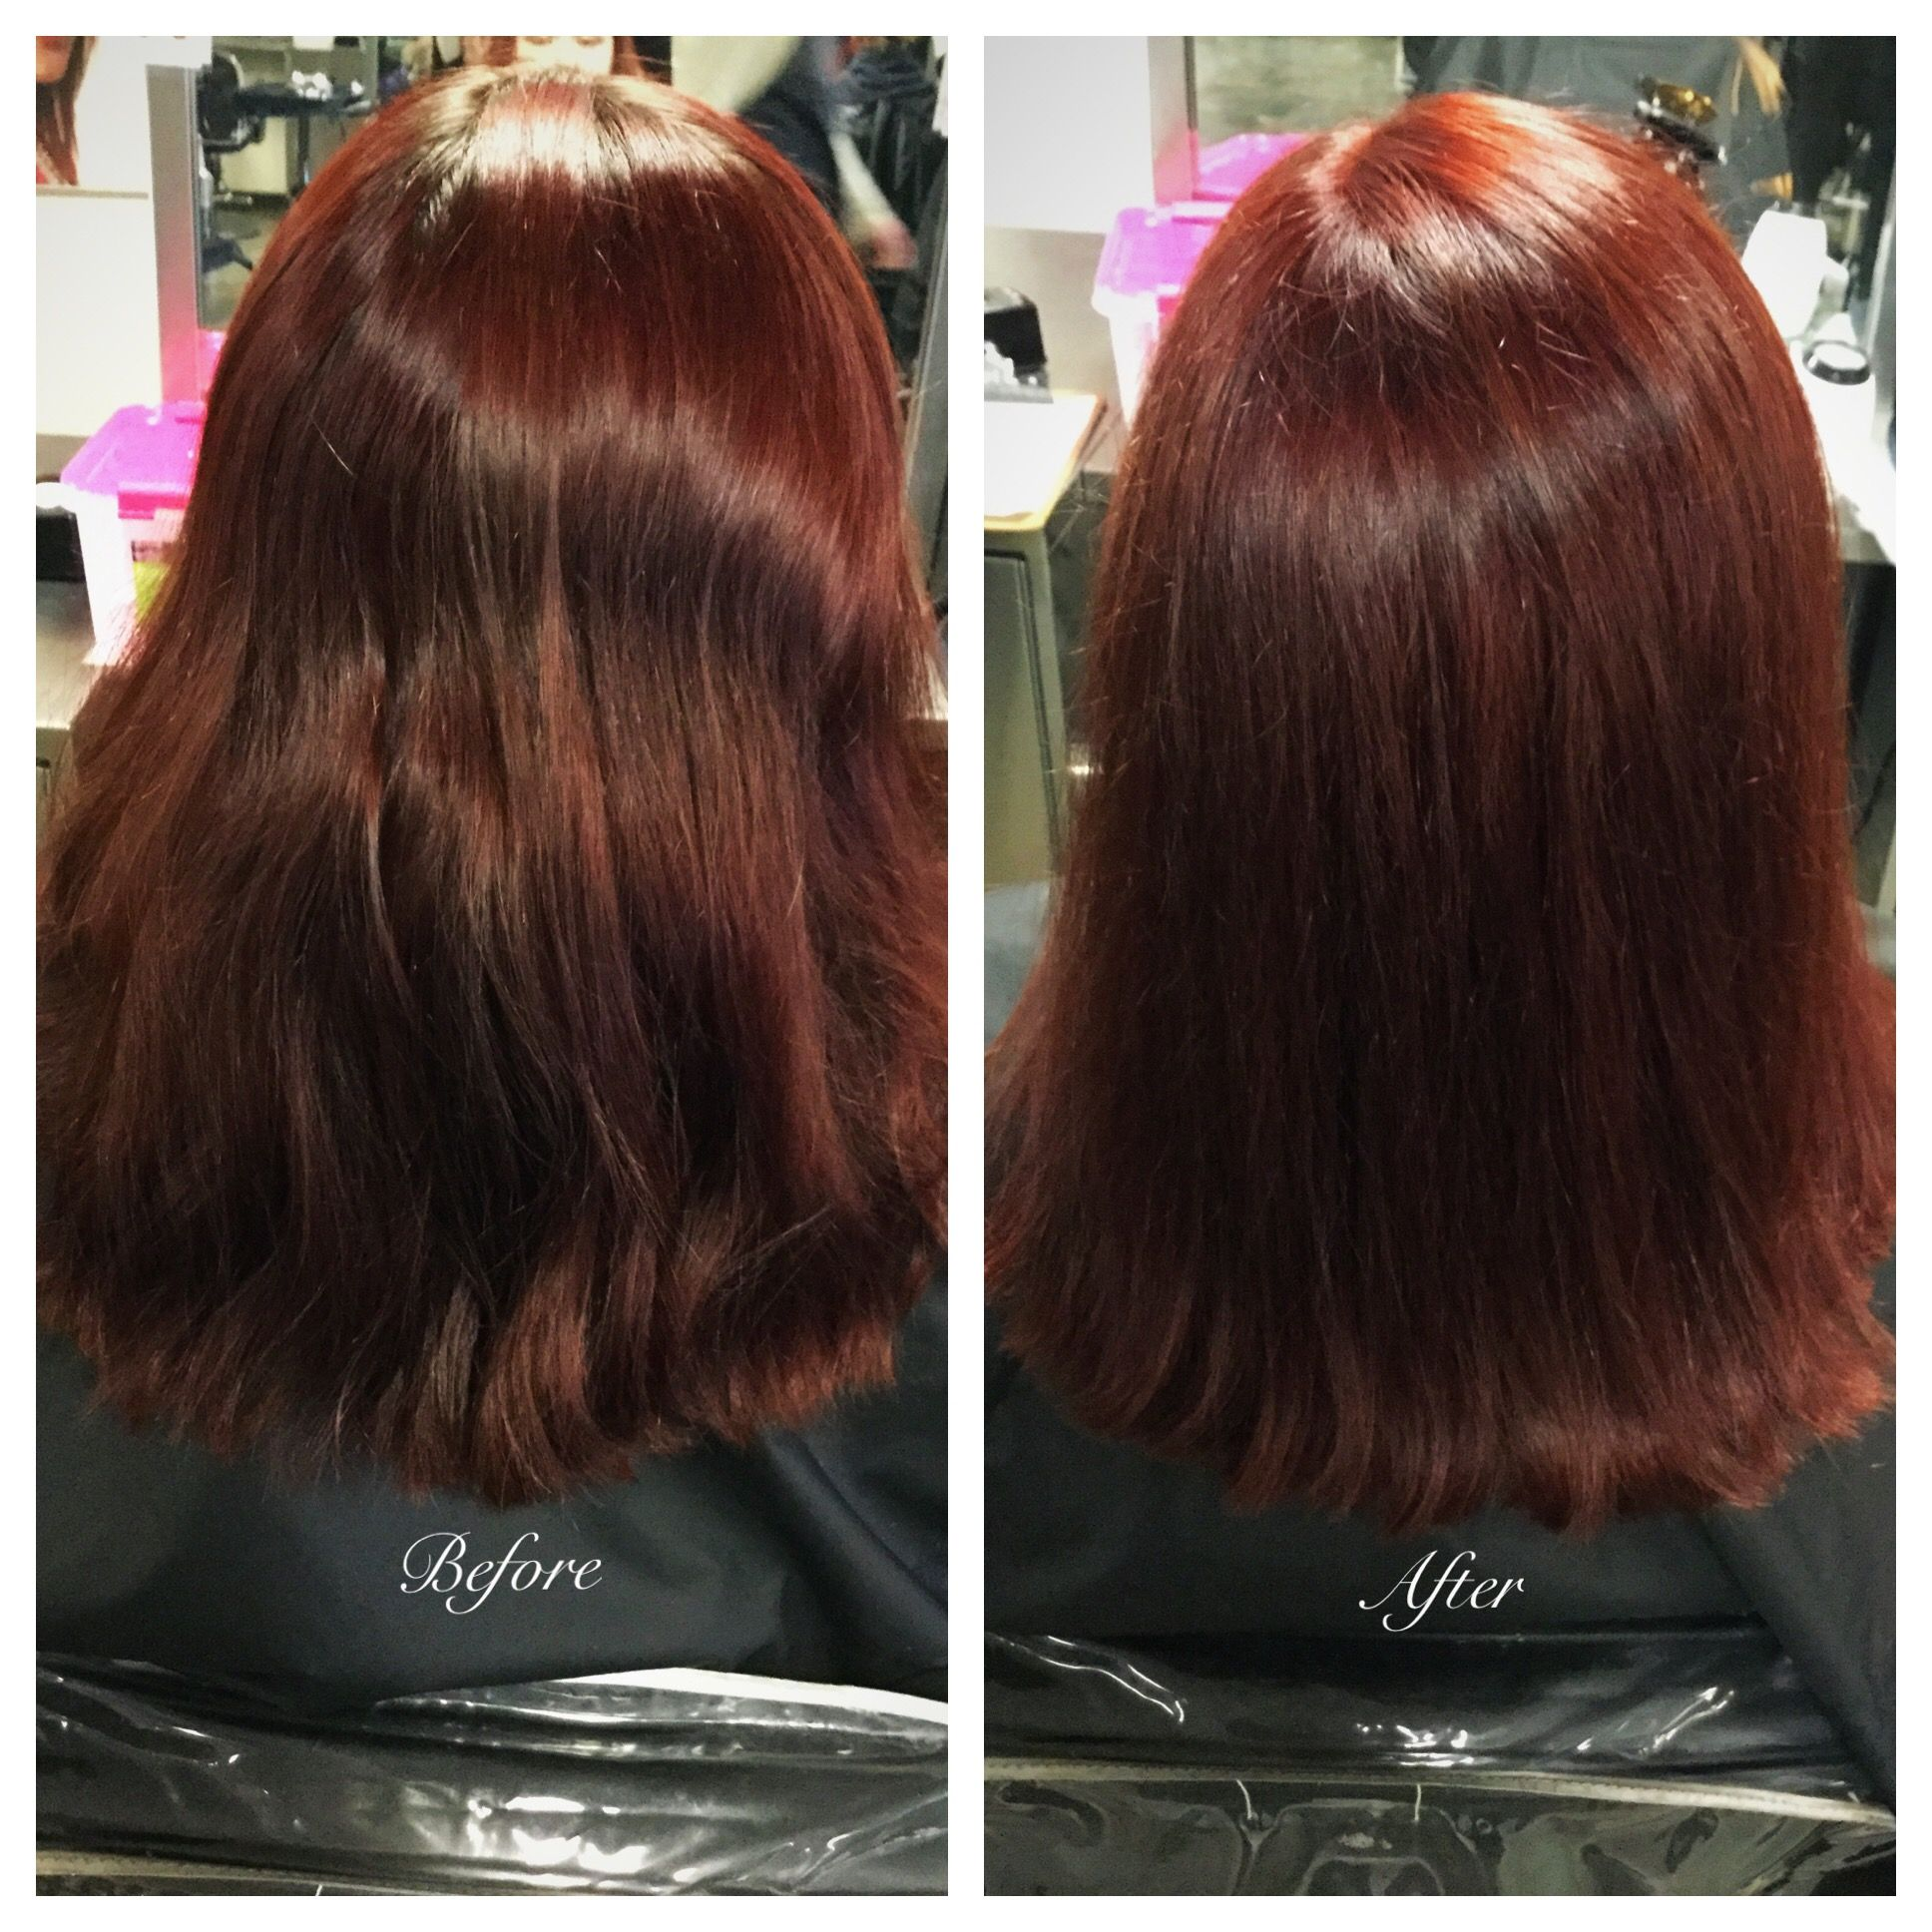 Retouch With Soap Cap At The Shampoo Bowl Using Wella Koleston Perfect 5 75 5 0 And 6 Ribbons Of Wella Special Mix 0 75